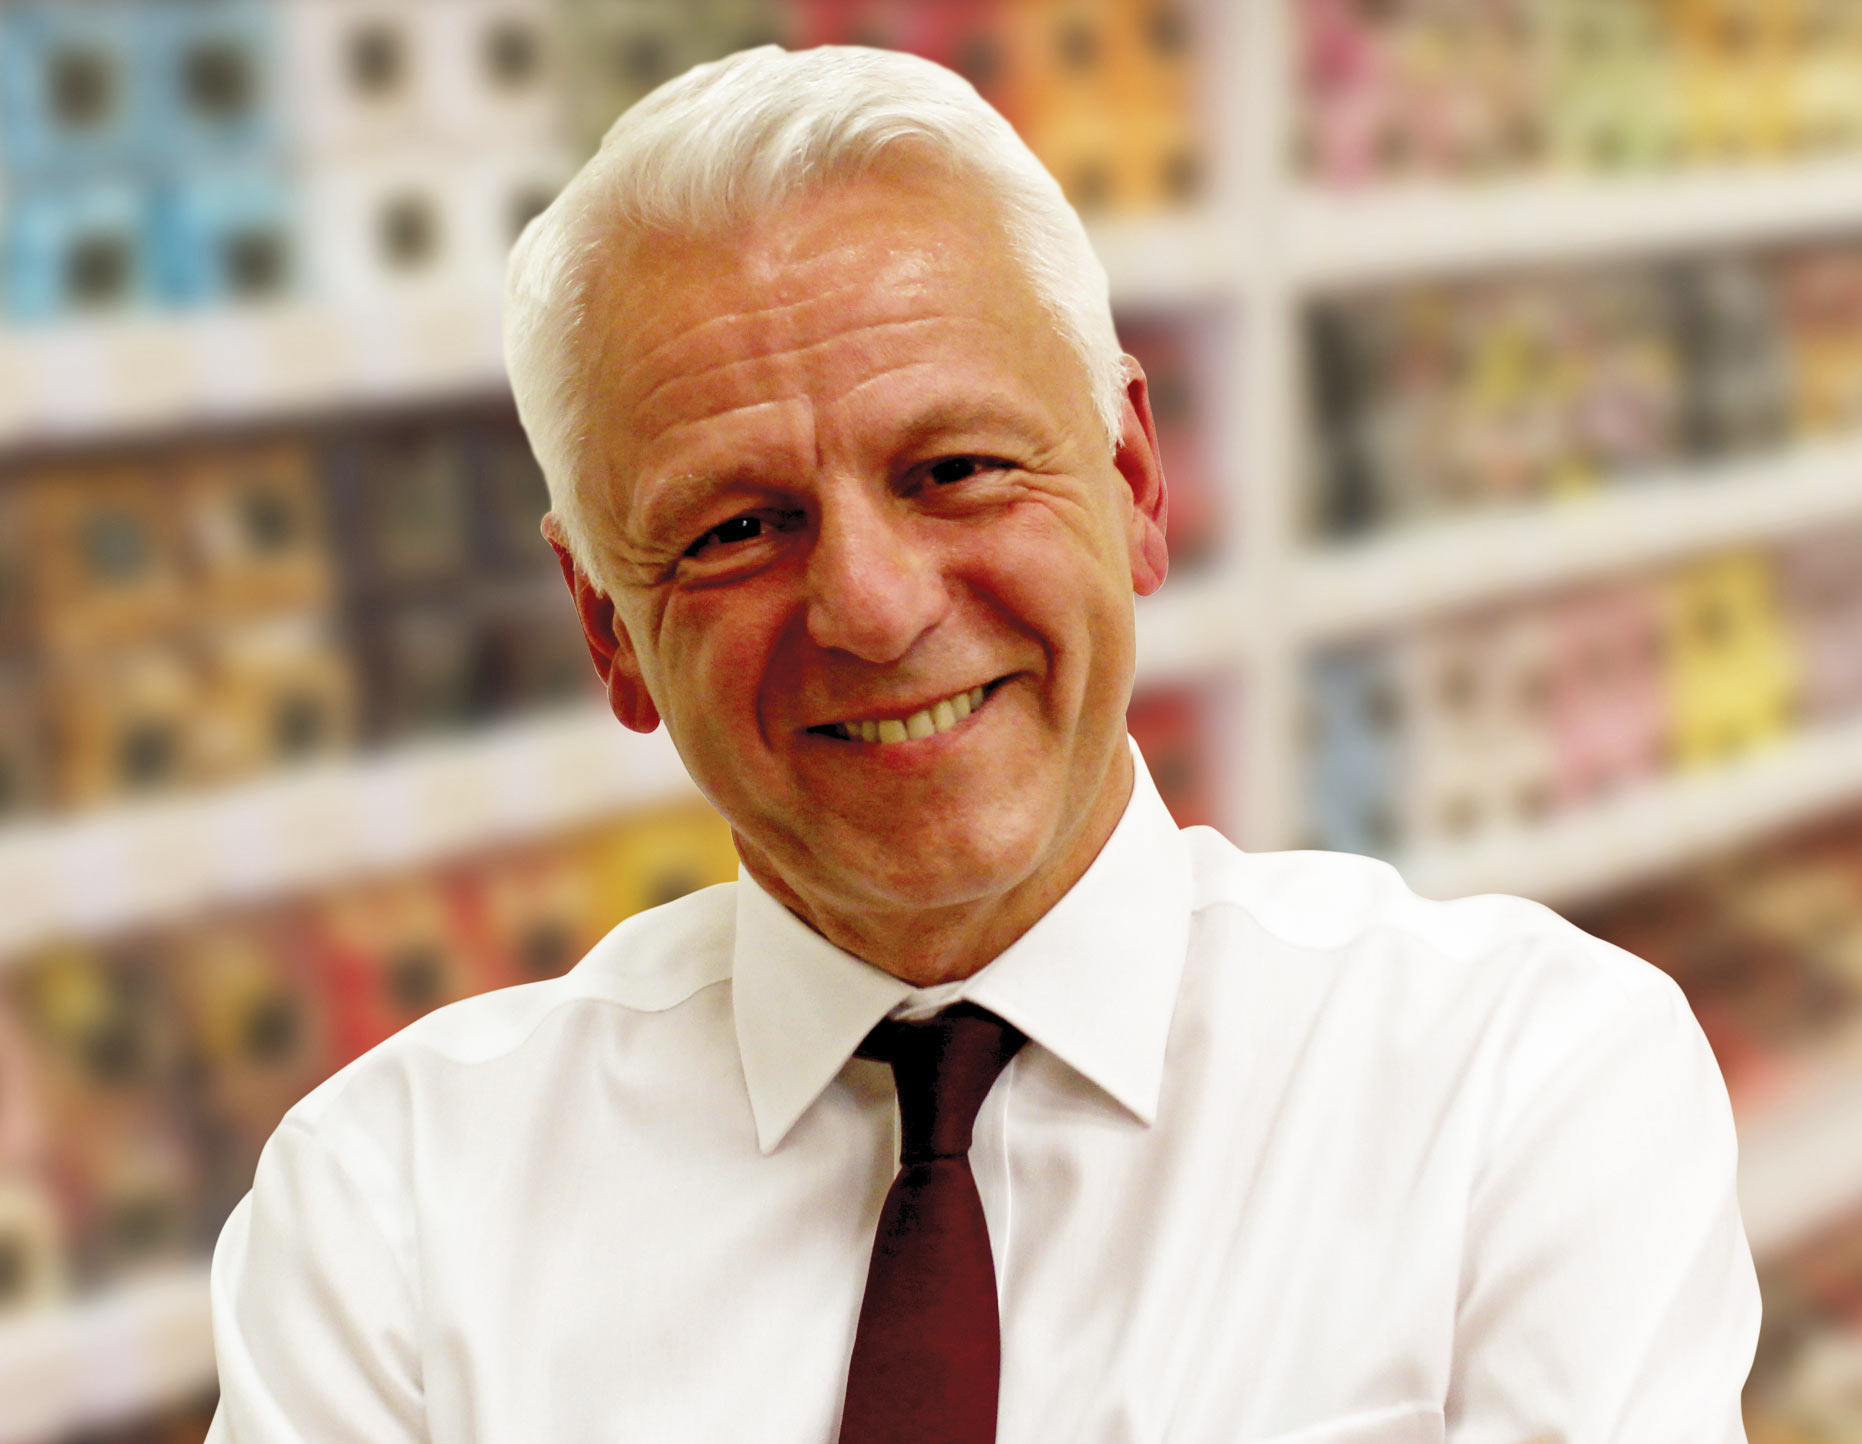 Steve Campbell is Managing Director of Bon Bon's